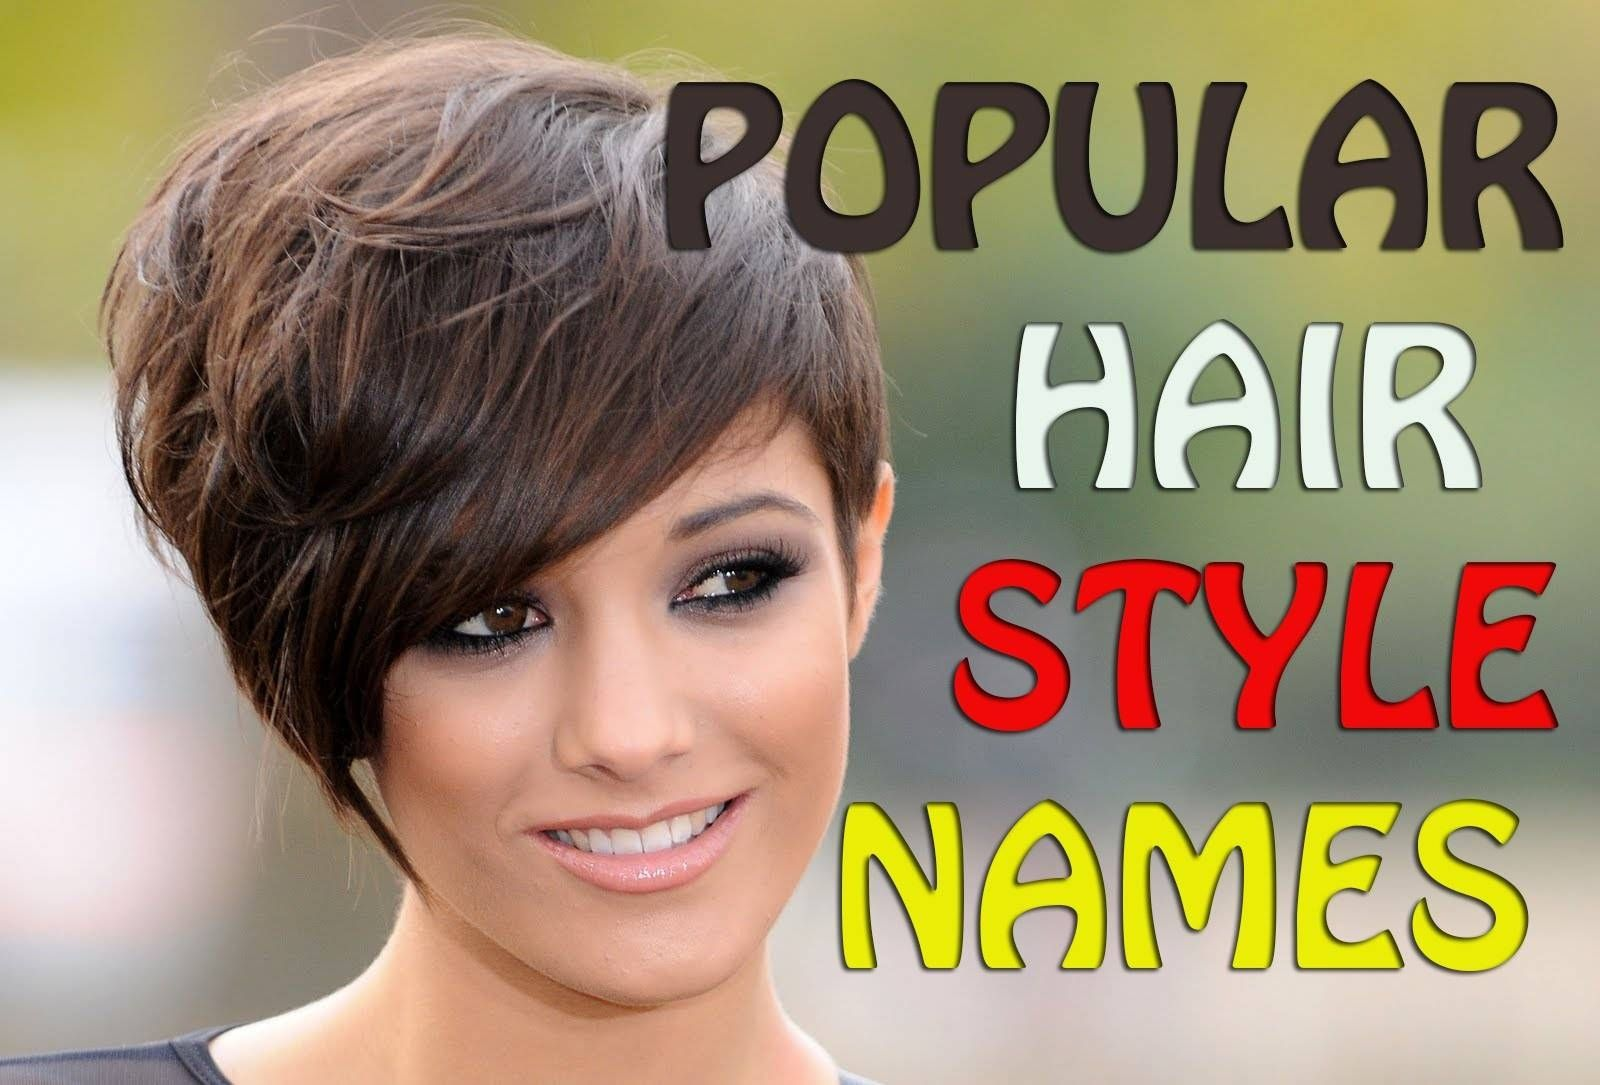 The Short Hairstyle Name  Womens hairstyles, Hairstyle names